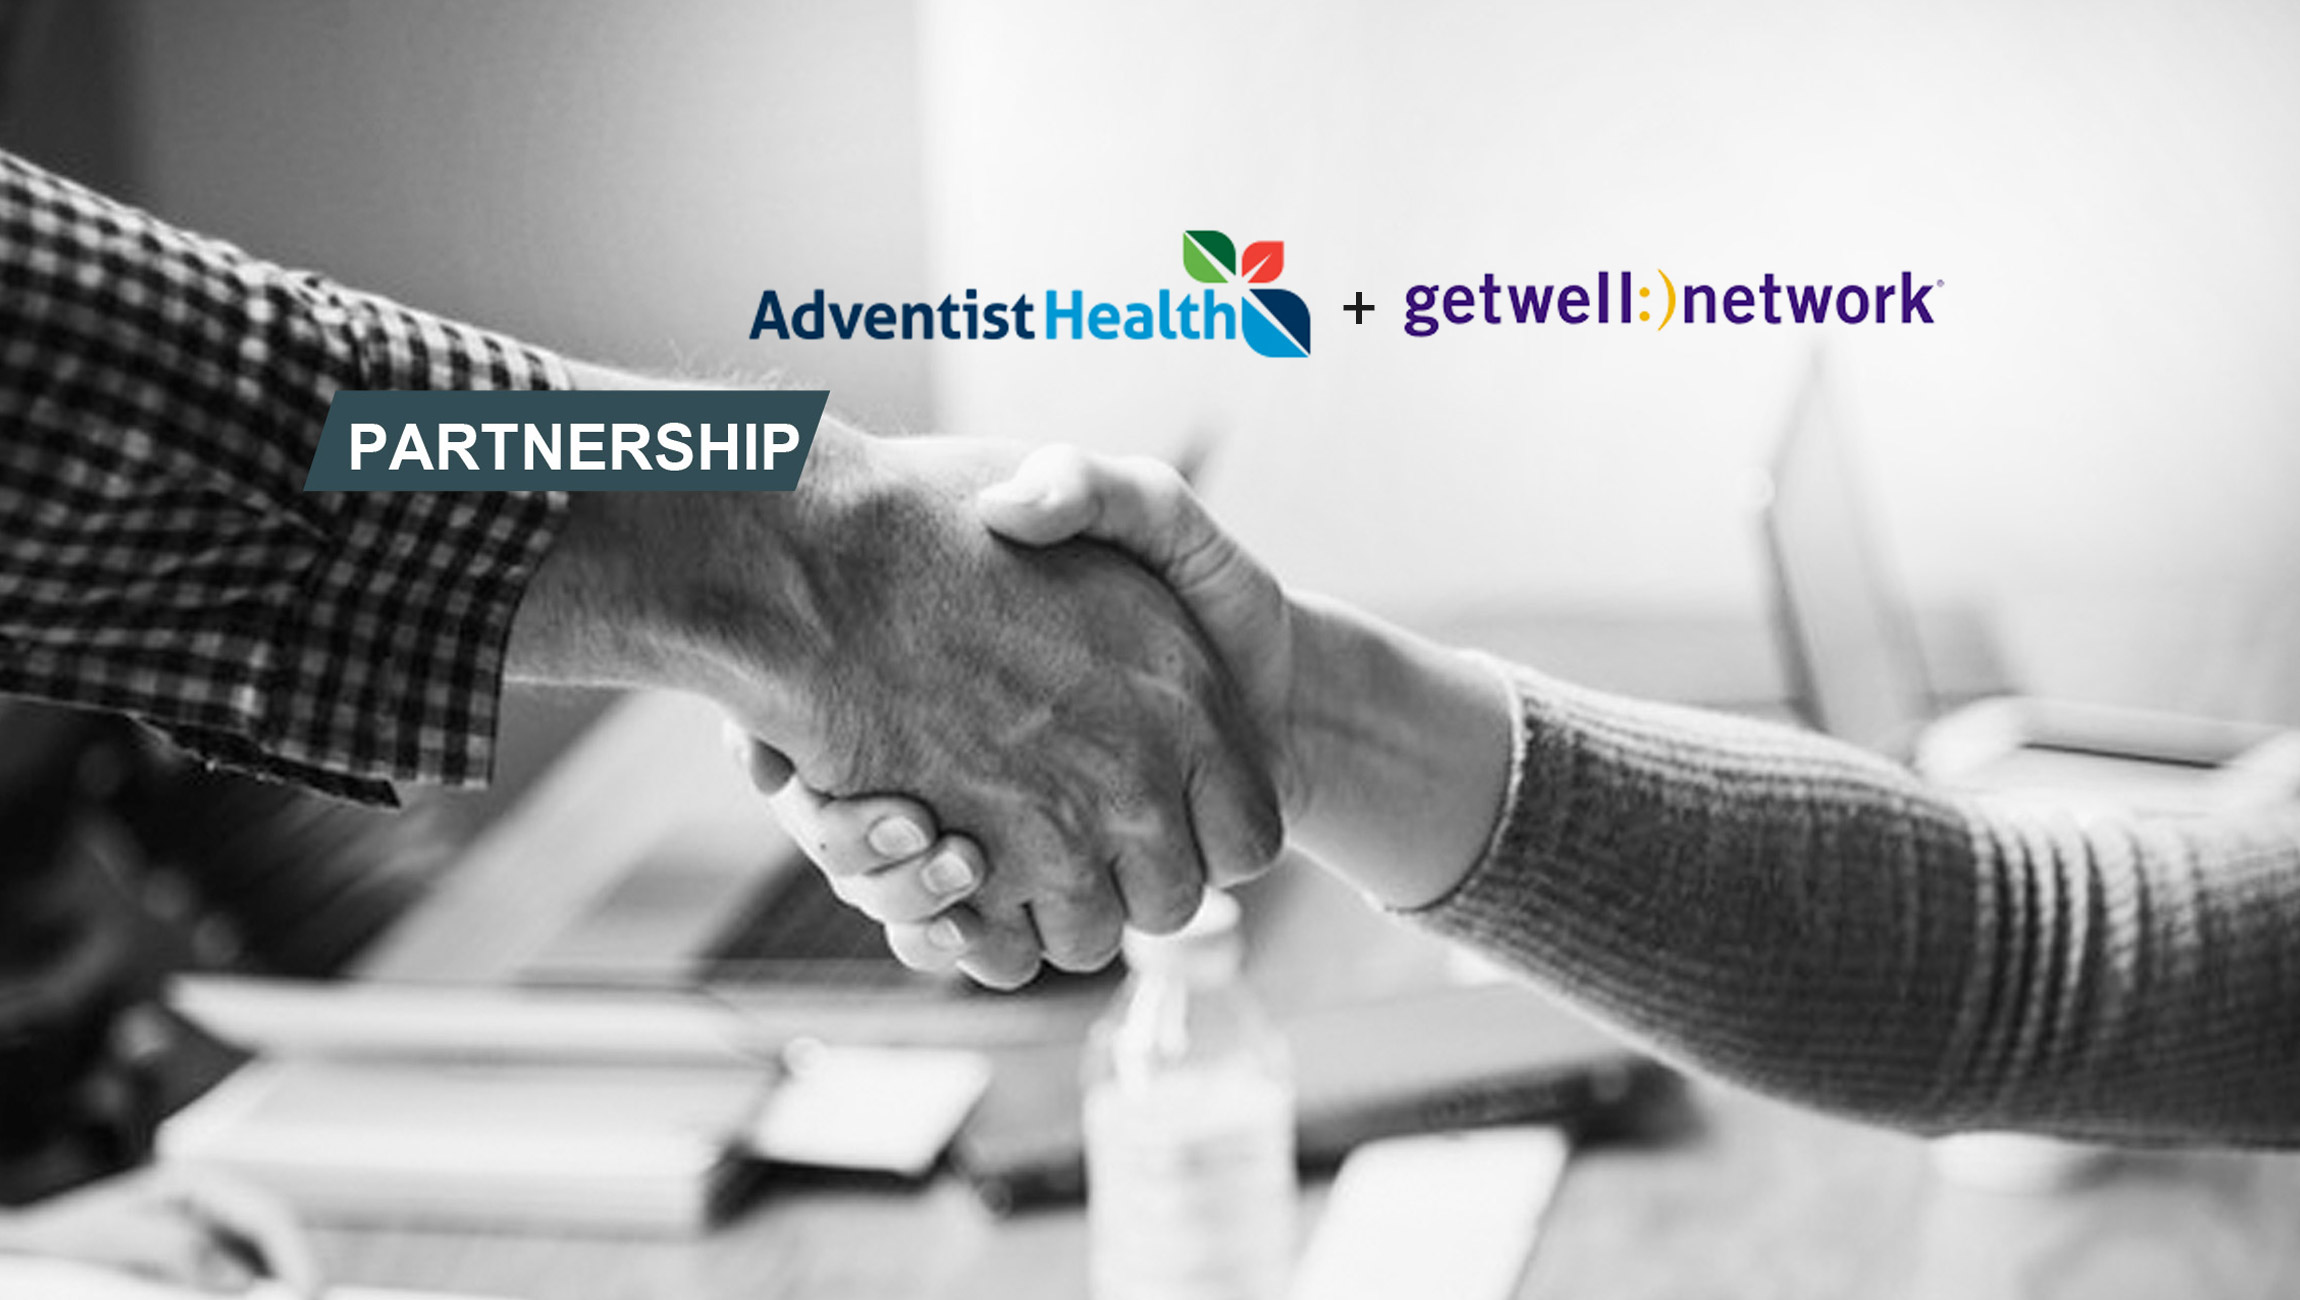 Adventist Health Taps GetWellNetwork as Innovation Partner To Reimagine the Consumer Experience in Digital Healthcare